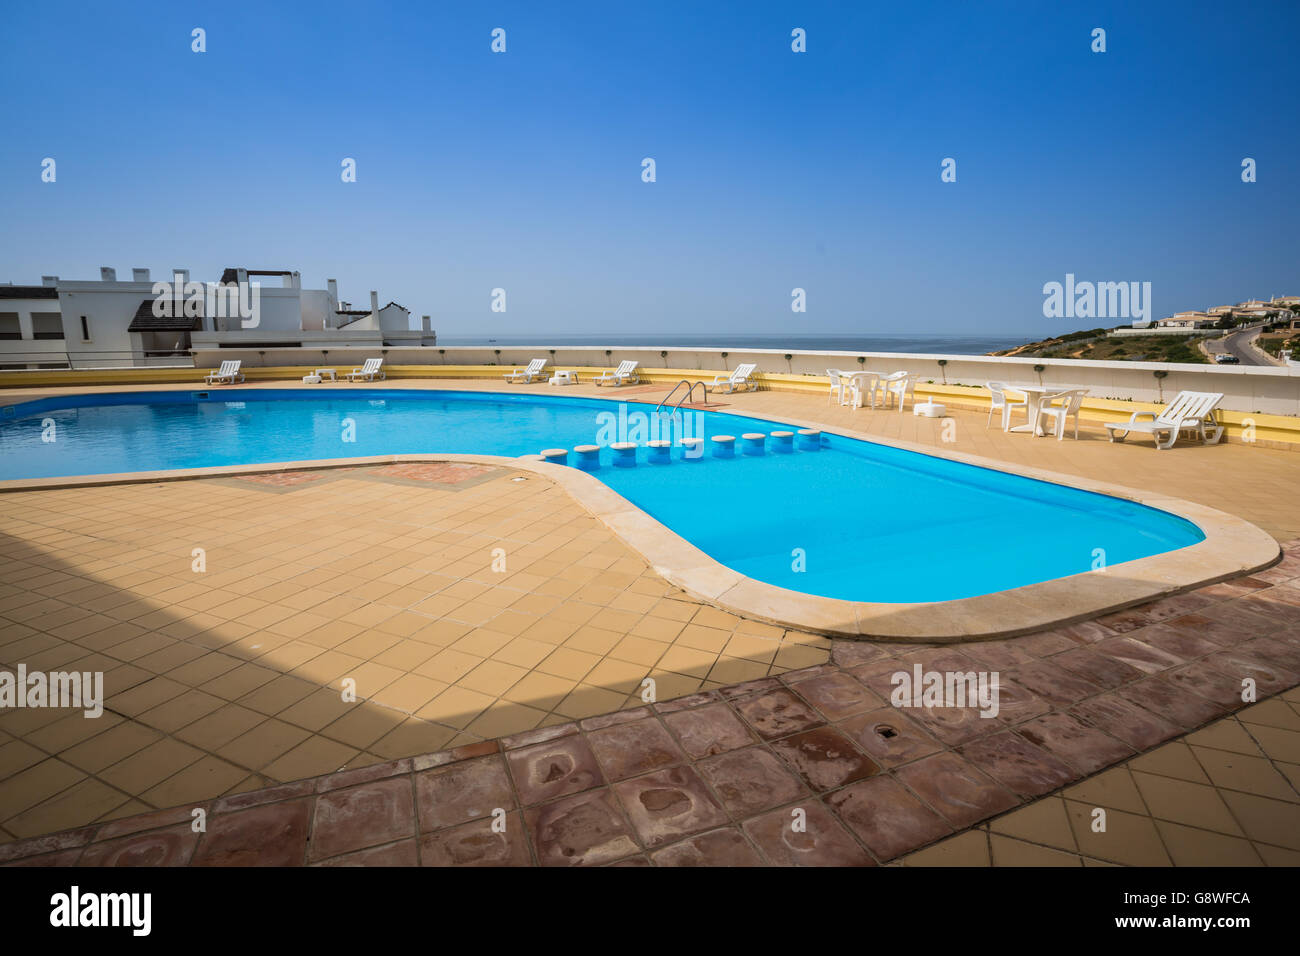 Pool On Top Of Building : Swimming pool on top of roof deck building stock photo